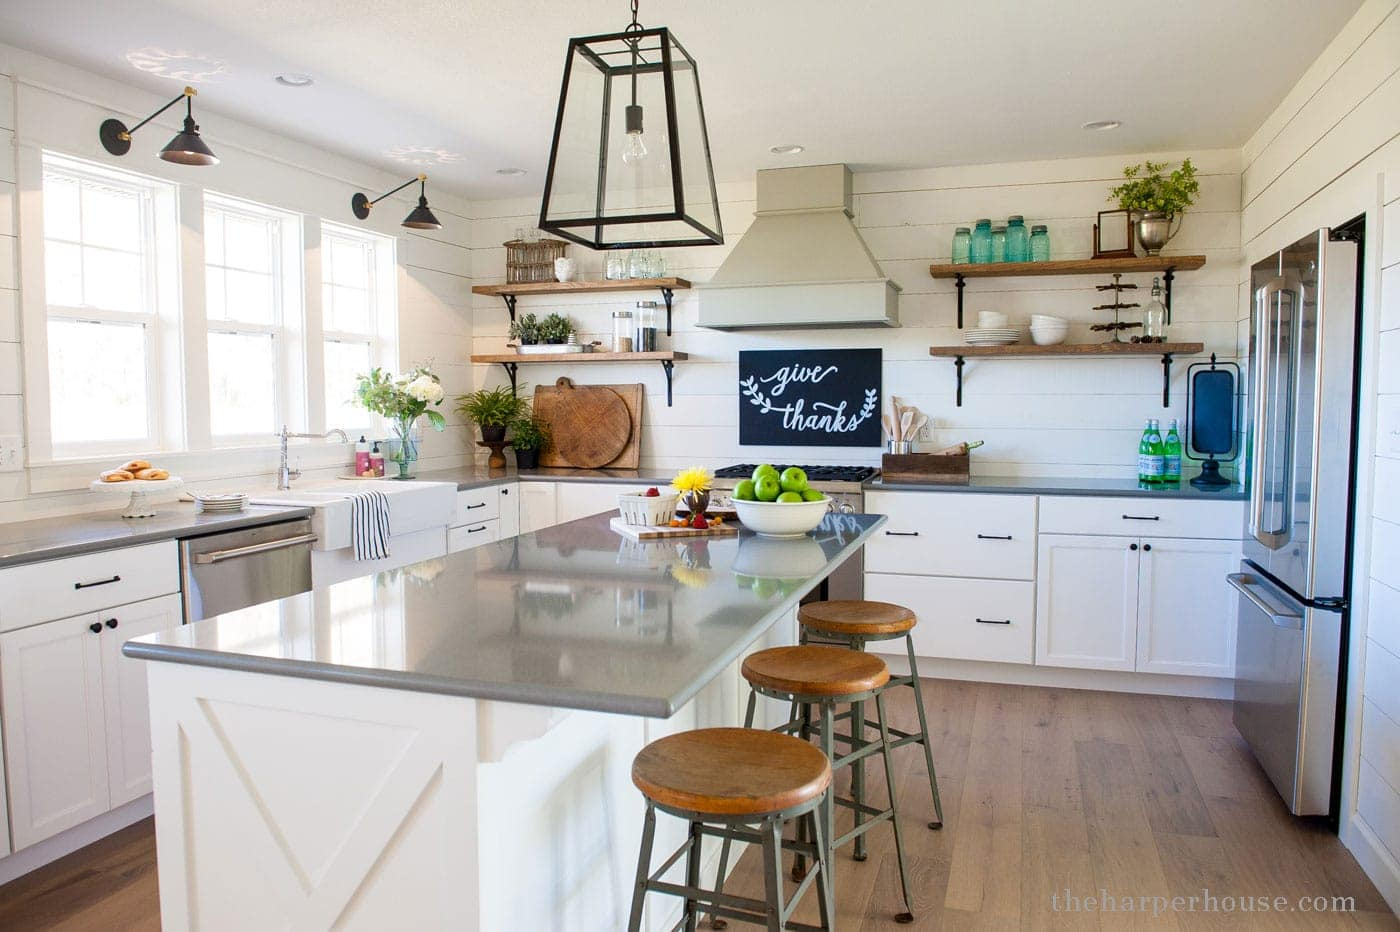 our farmhouse kitchen reveal | The Harper House on shaker homes, shaker cottage kitchen, shaker transitional kitchen, shaker barn, shaker contemporary kitchen, shaker living room, shaker bedroom, shaker dining room, shaker traditional kitchen,